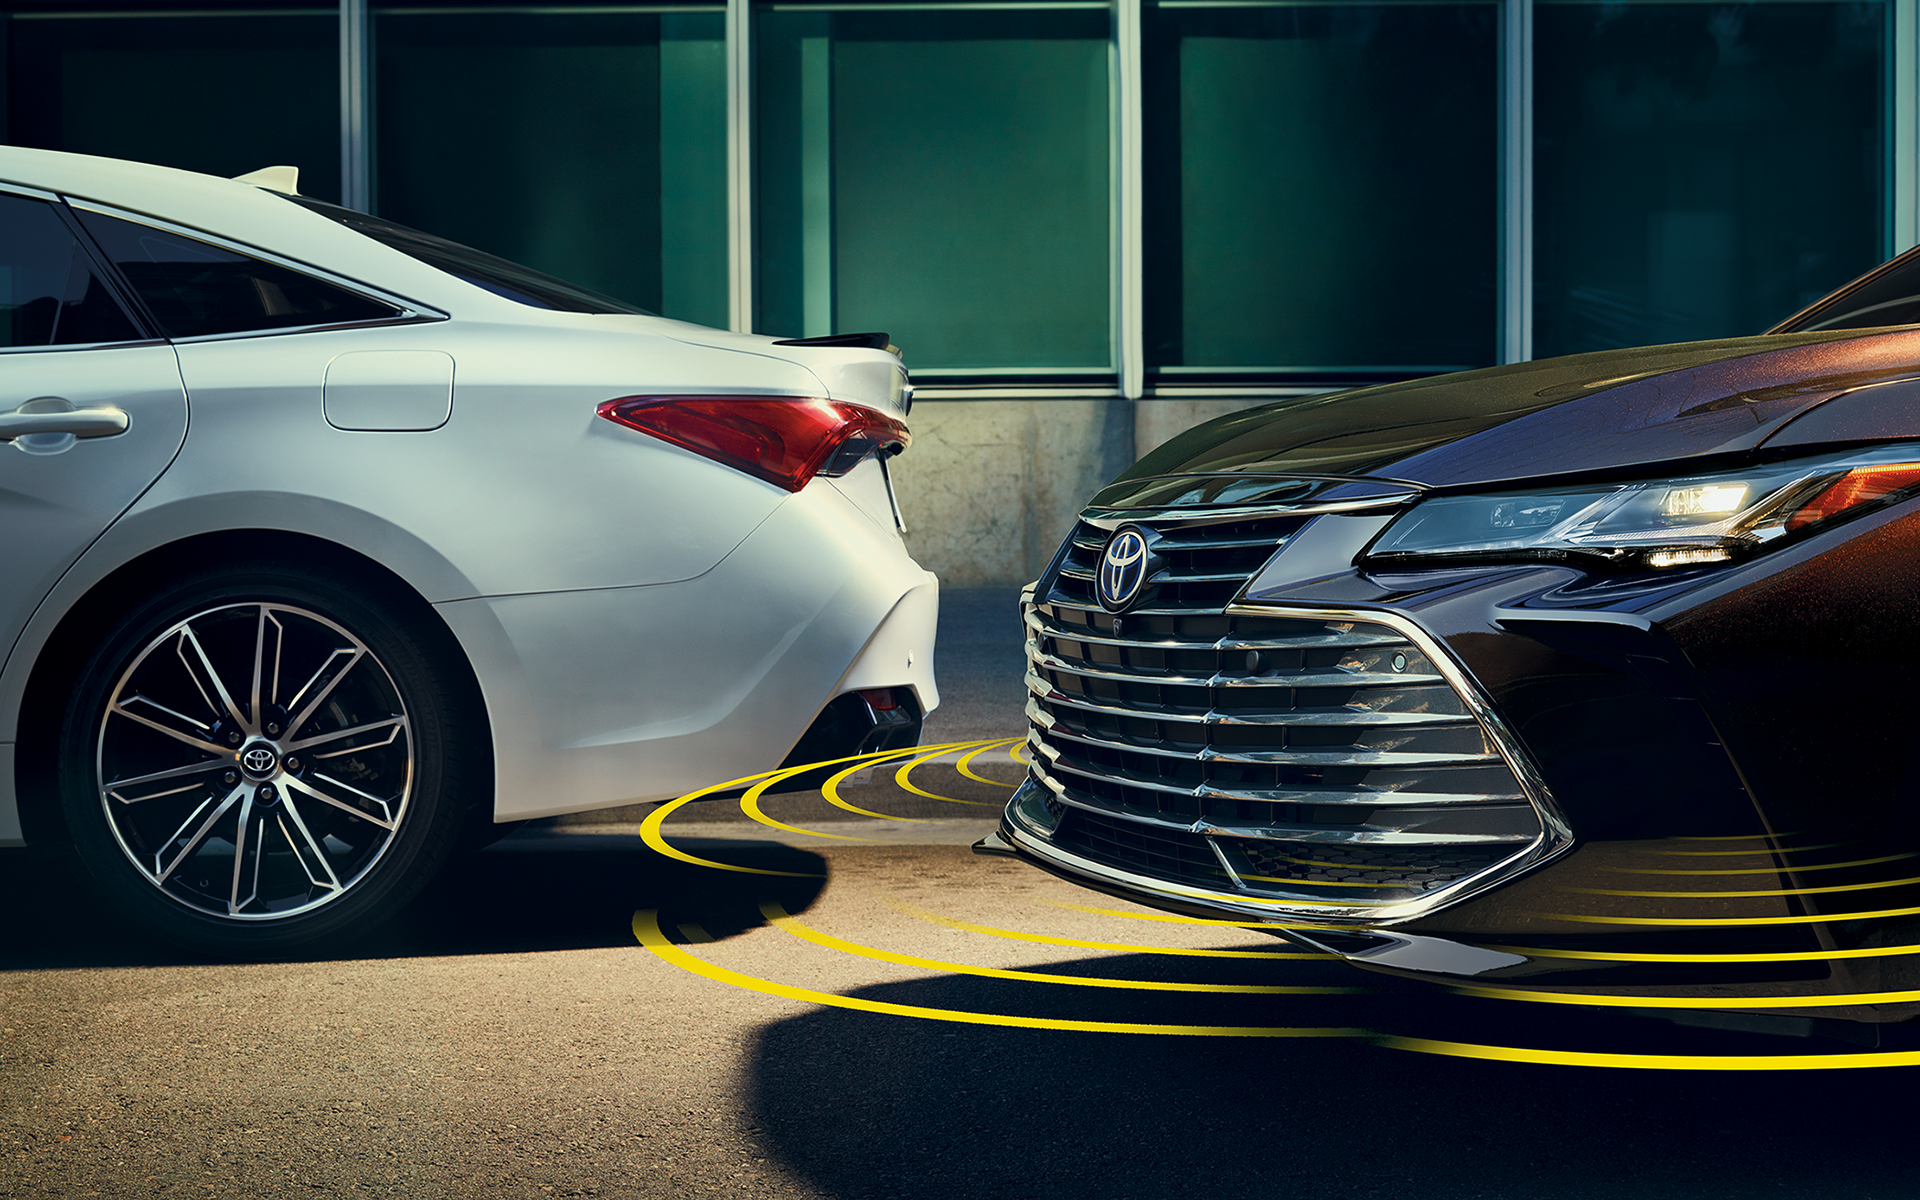 2019 Toyota Avalon Safety System announces nearby obstacles